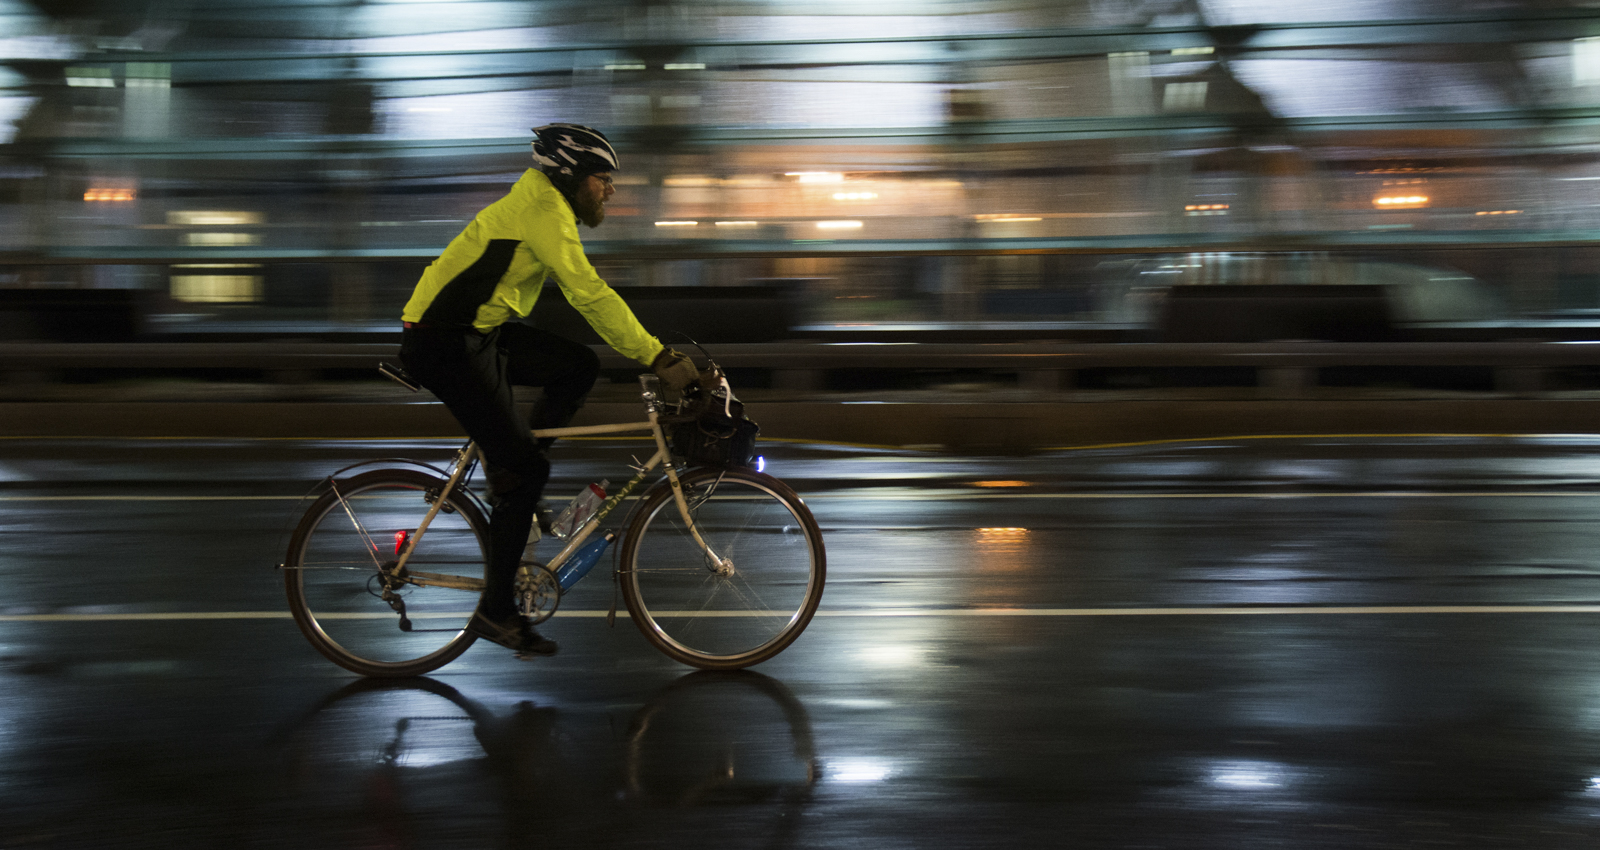 0eefc0a643f A cyclist passes through Kenmore Square early Monday moring during the  Midnight Bike Ride. Photo by Jessica Richardson  BU News Service